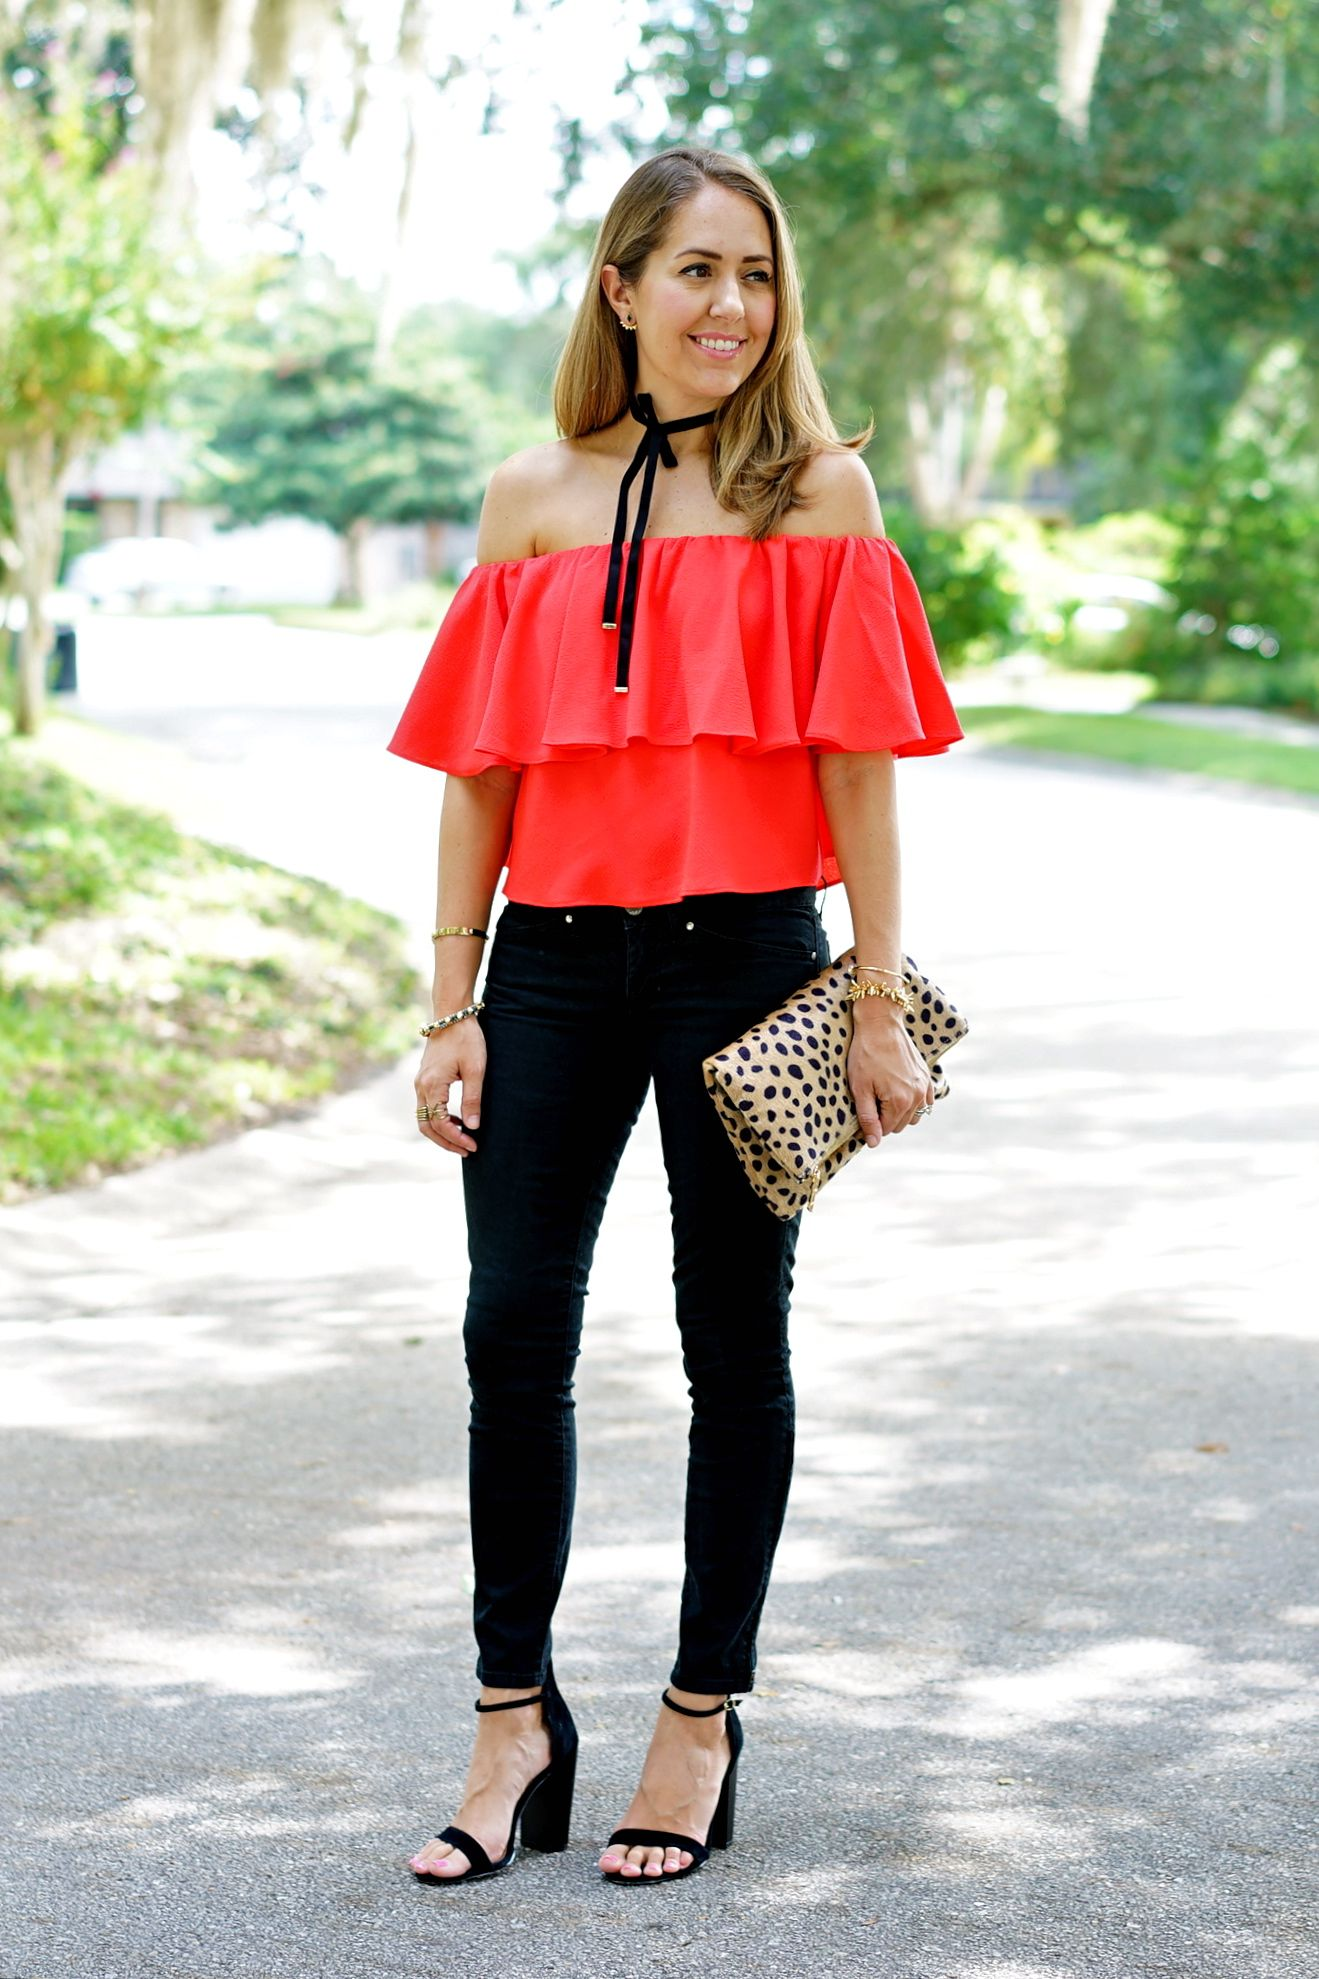 Red top, black jeans, leopard clutch | J's Everyday Fashion Blog ...